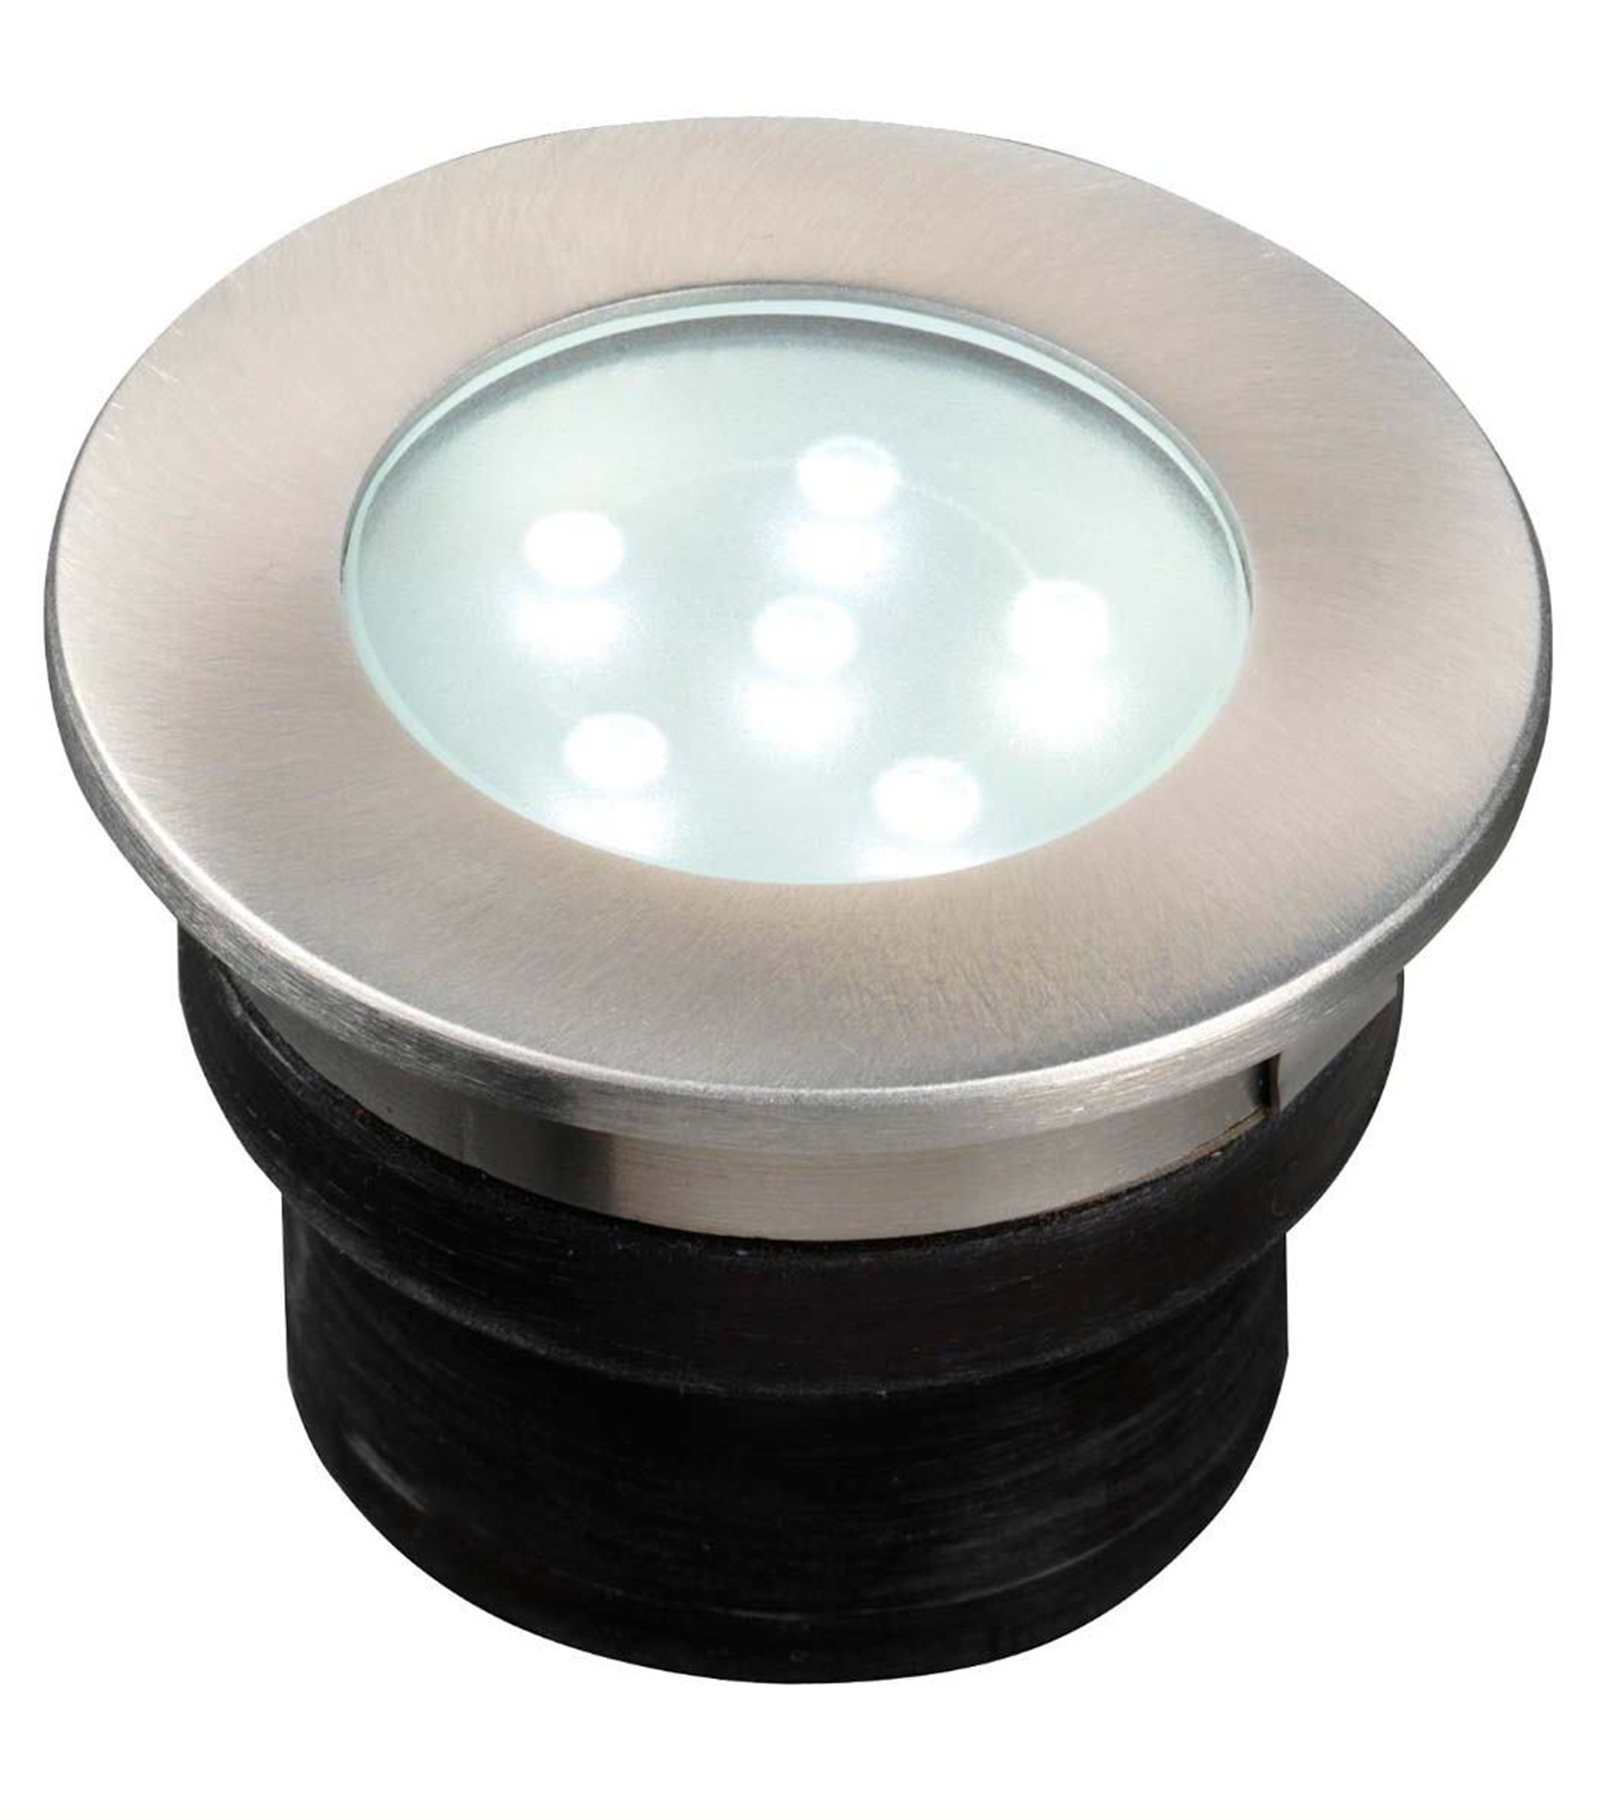 Eclairage Exterieur Led 12 Volts Spot Encastrable Brevus 1w Platine Led Ip68 Blanc Très Froid